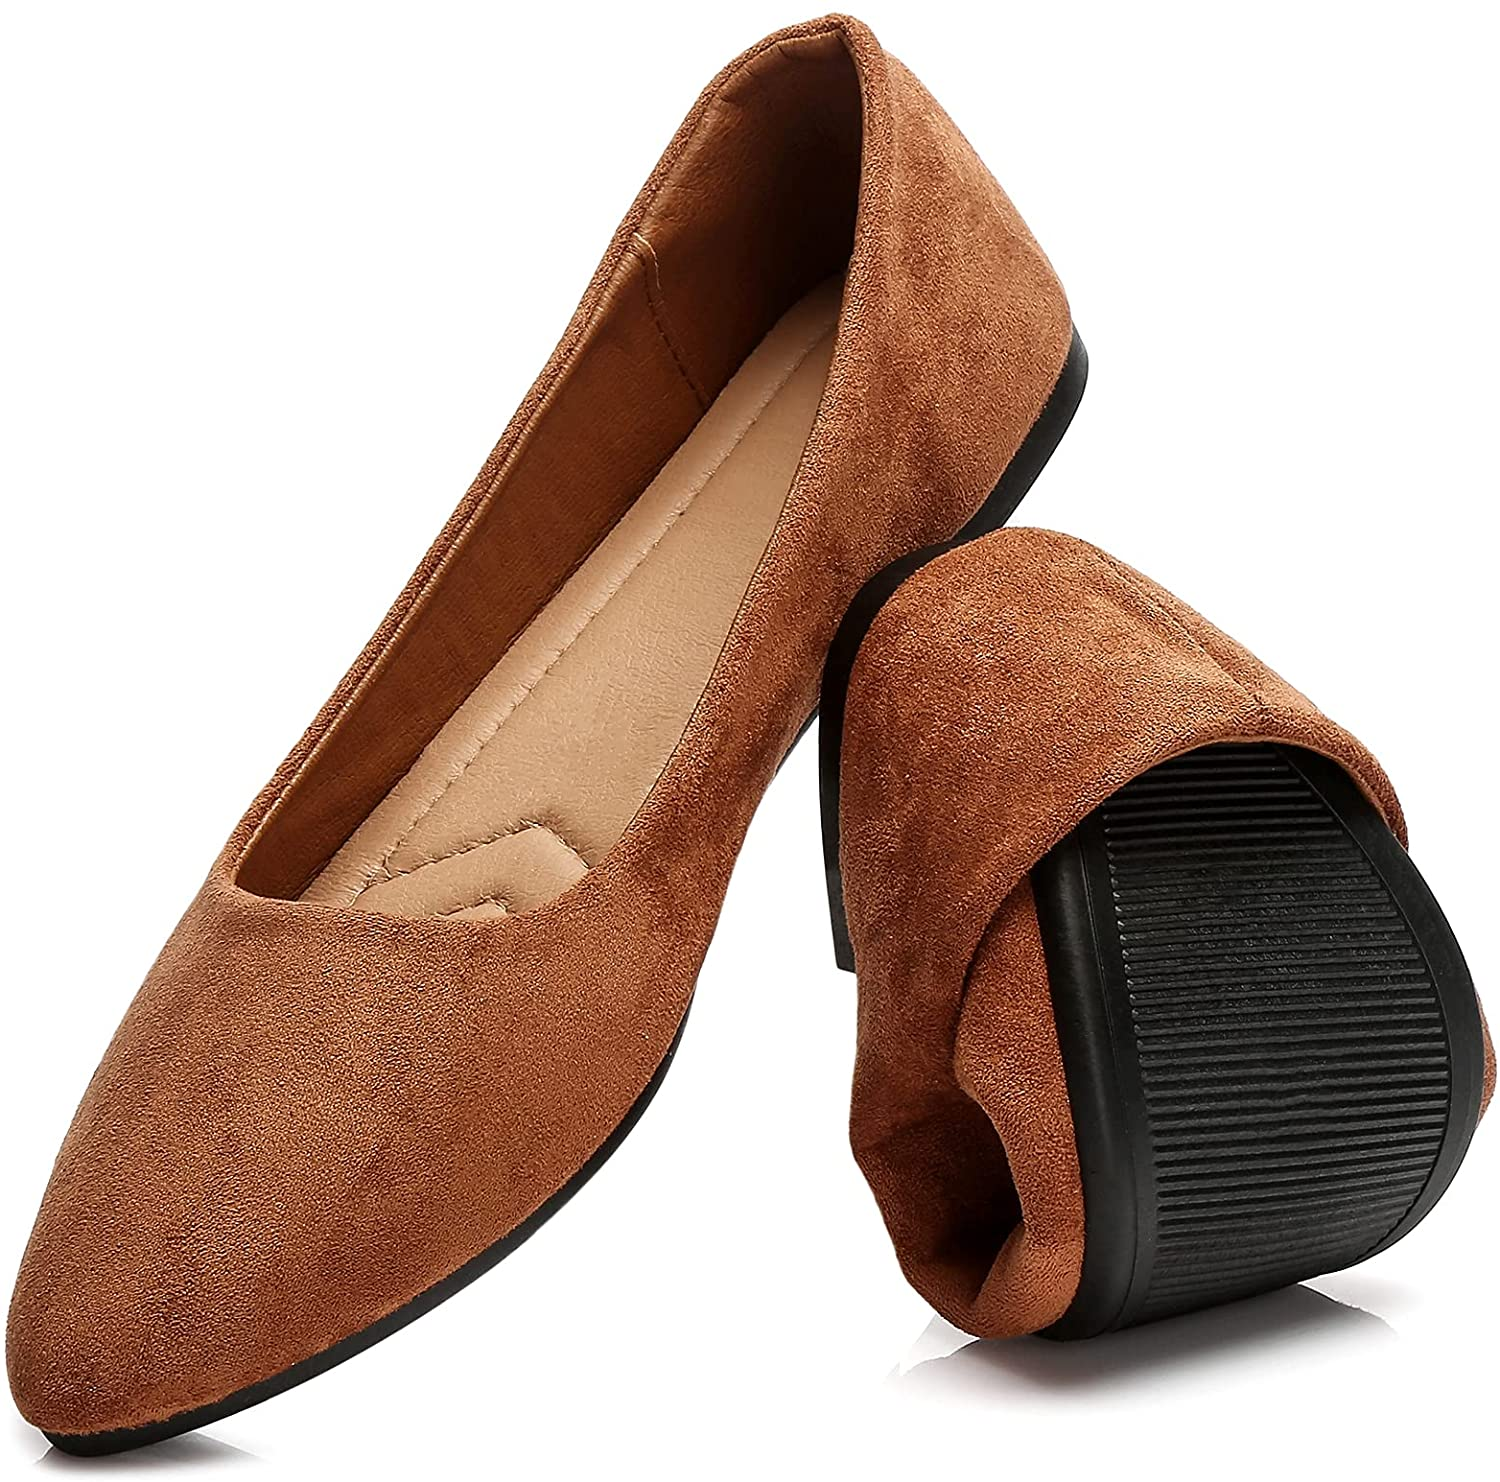 HEAWISH Women's Black Flats Shoes Max 53% OFF Comfortable In stock Toe Suede Pointed